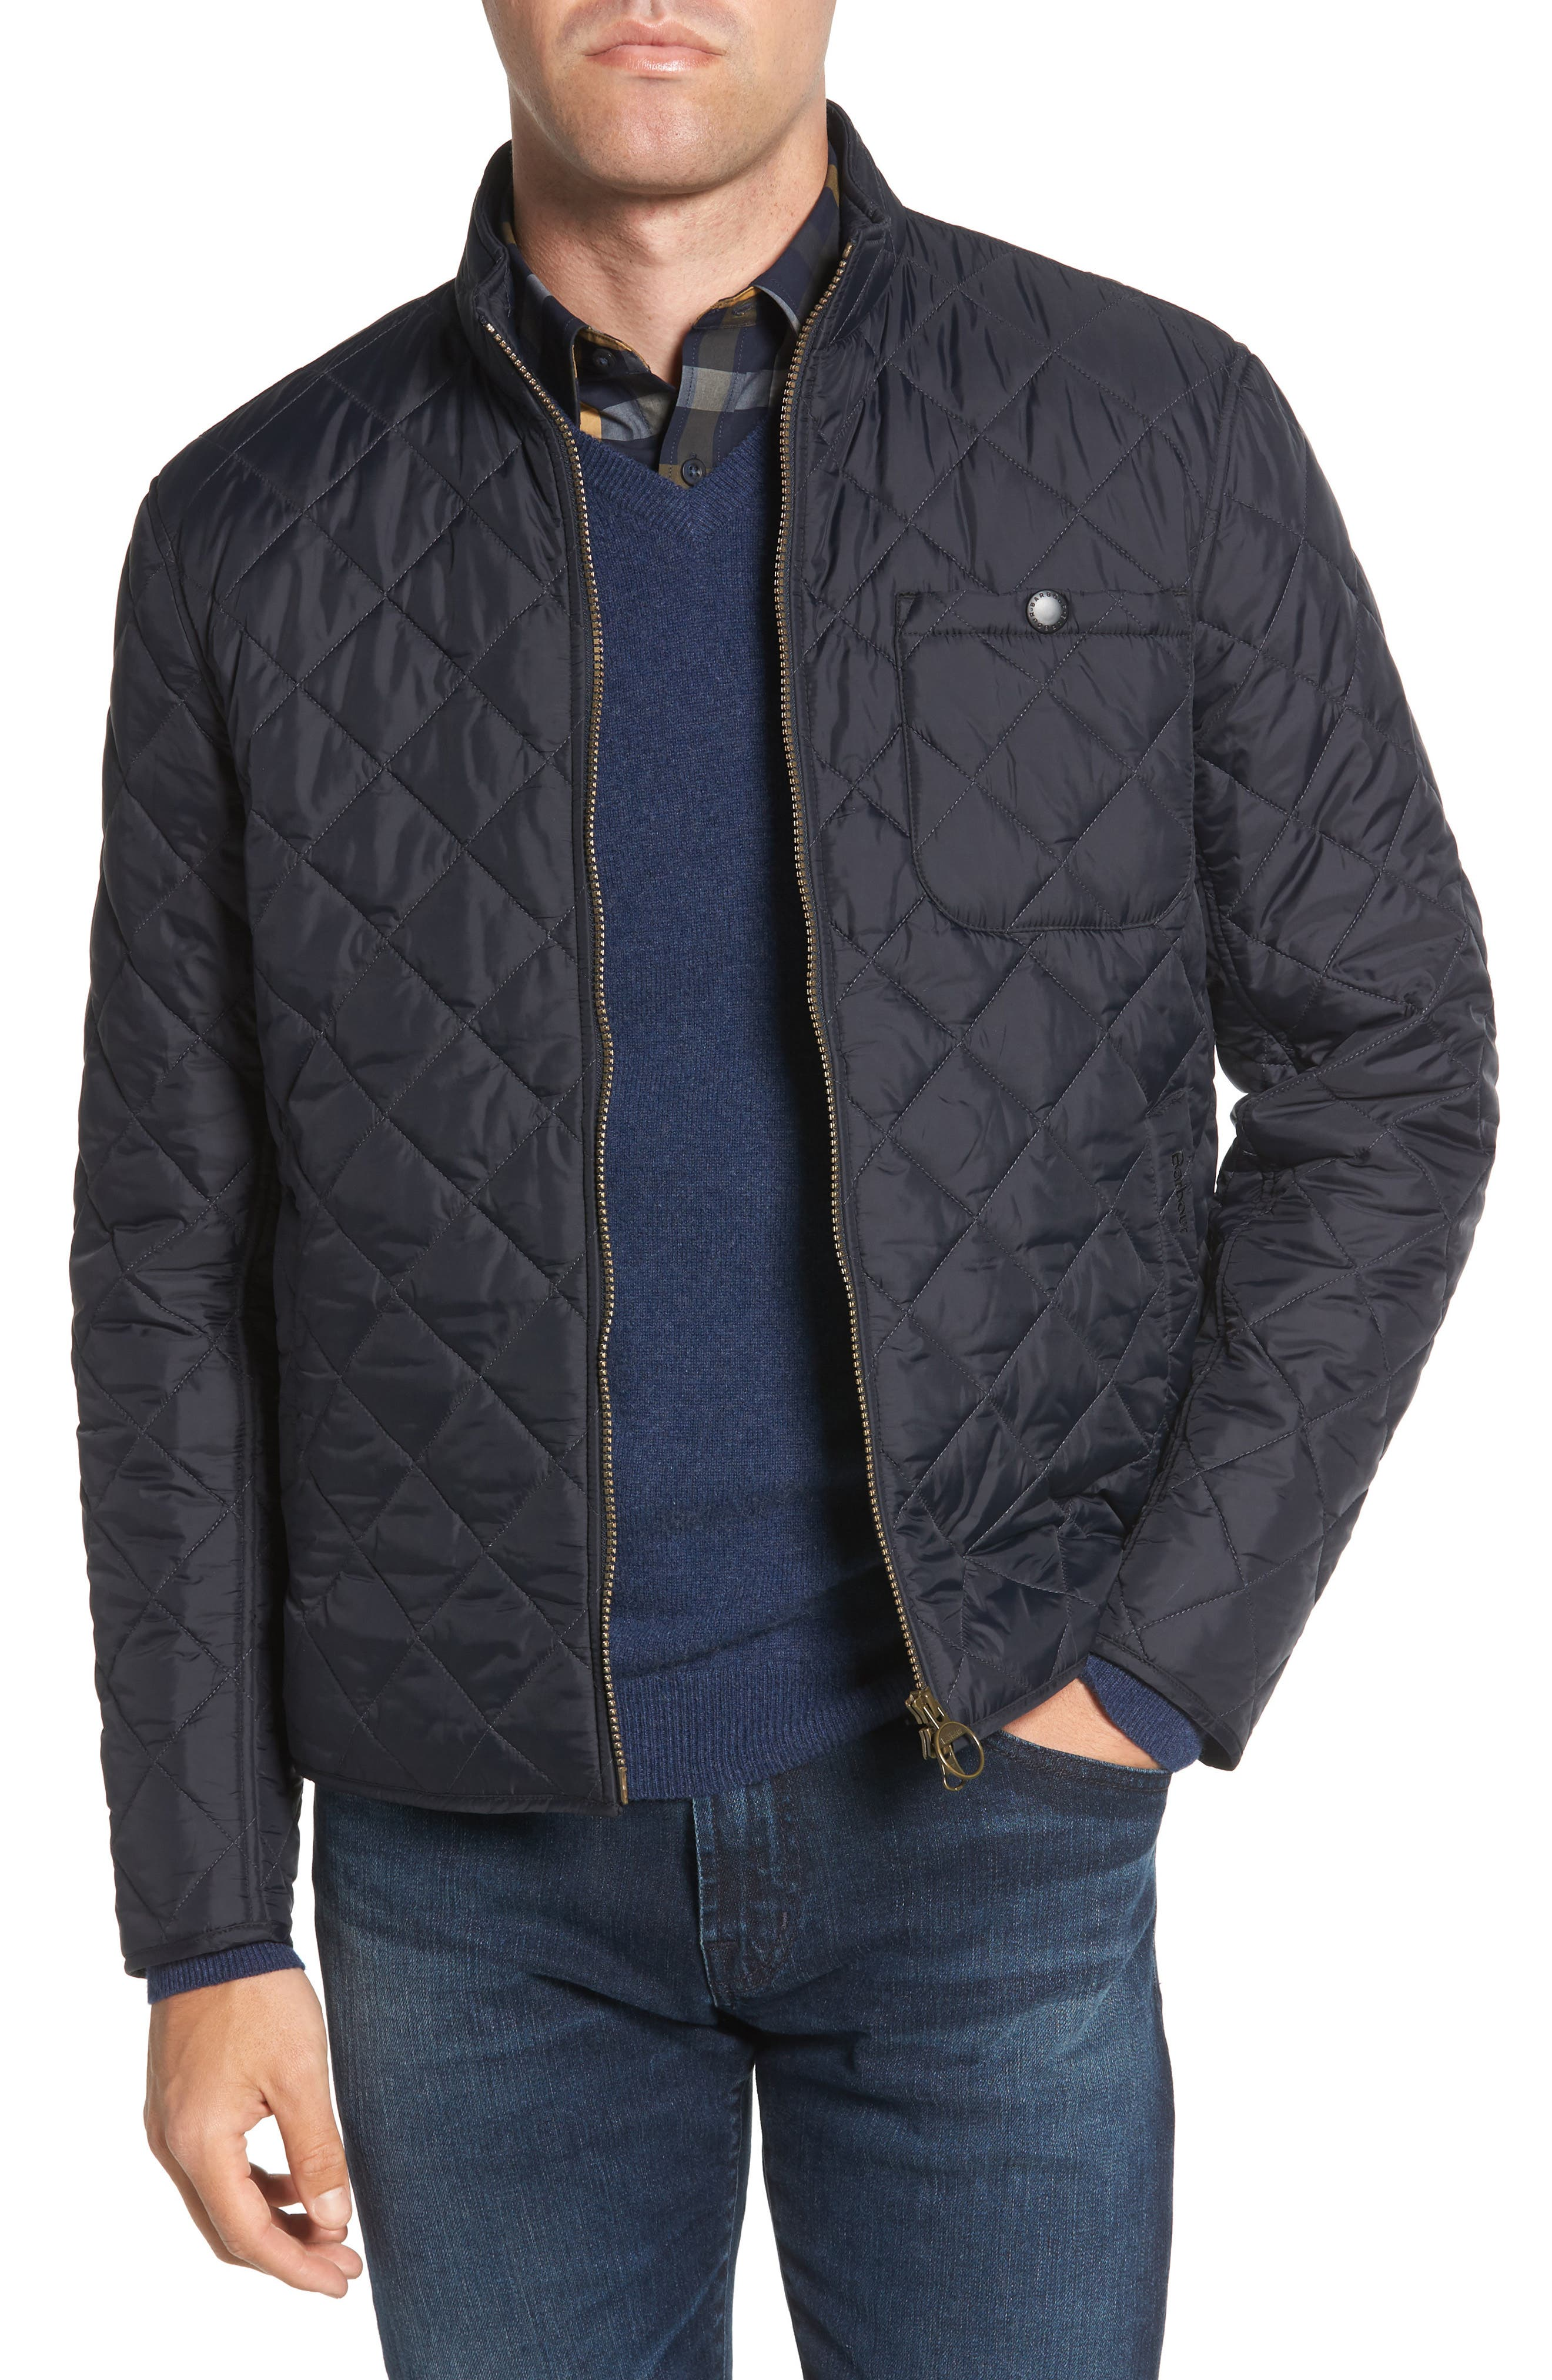 Pod Slim Fit Quilted Jacket,                             Main thumbnail 1, color,                             NAVY/ BLUE